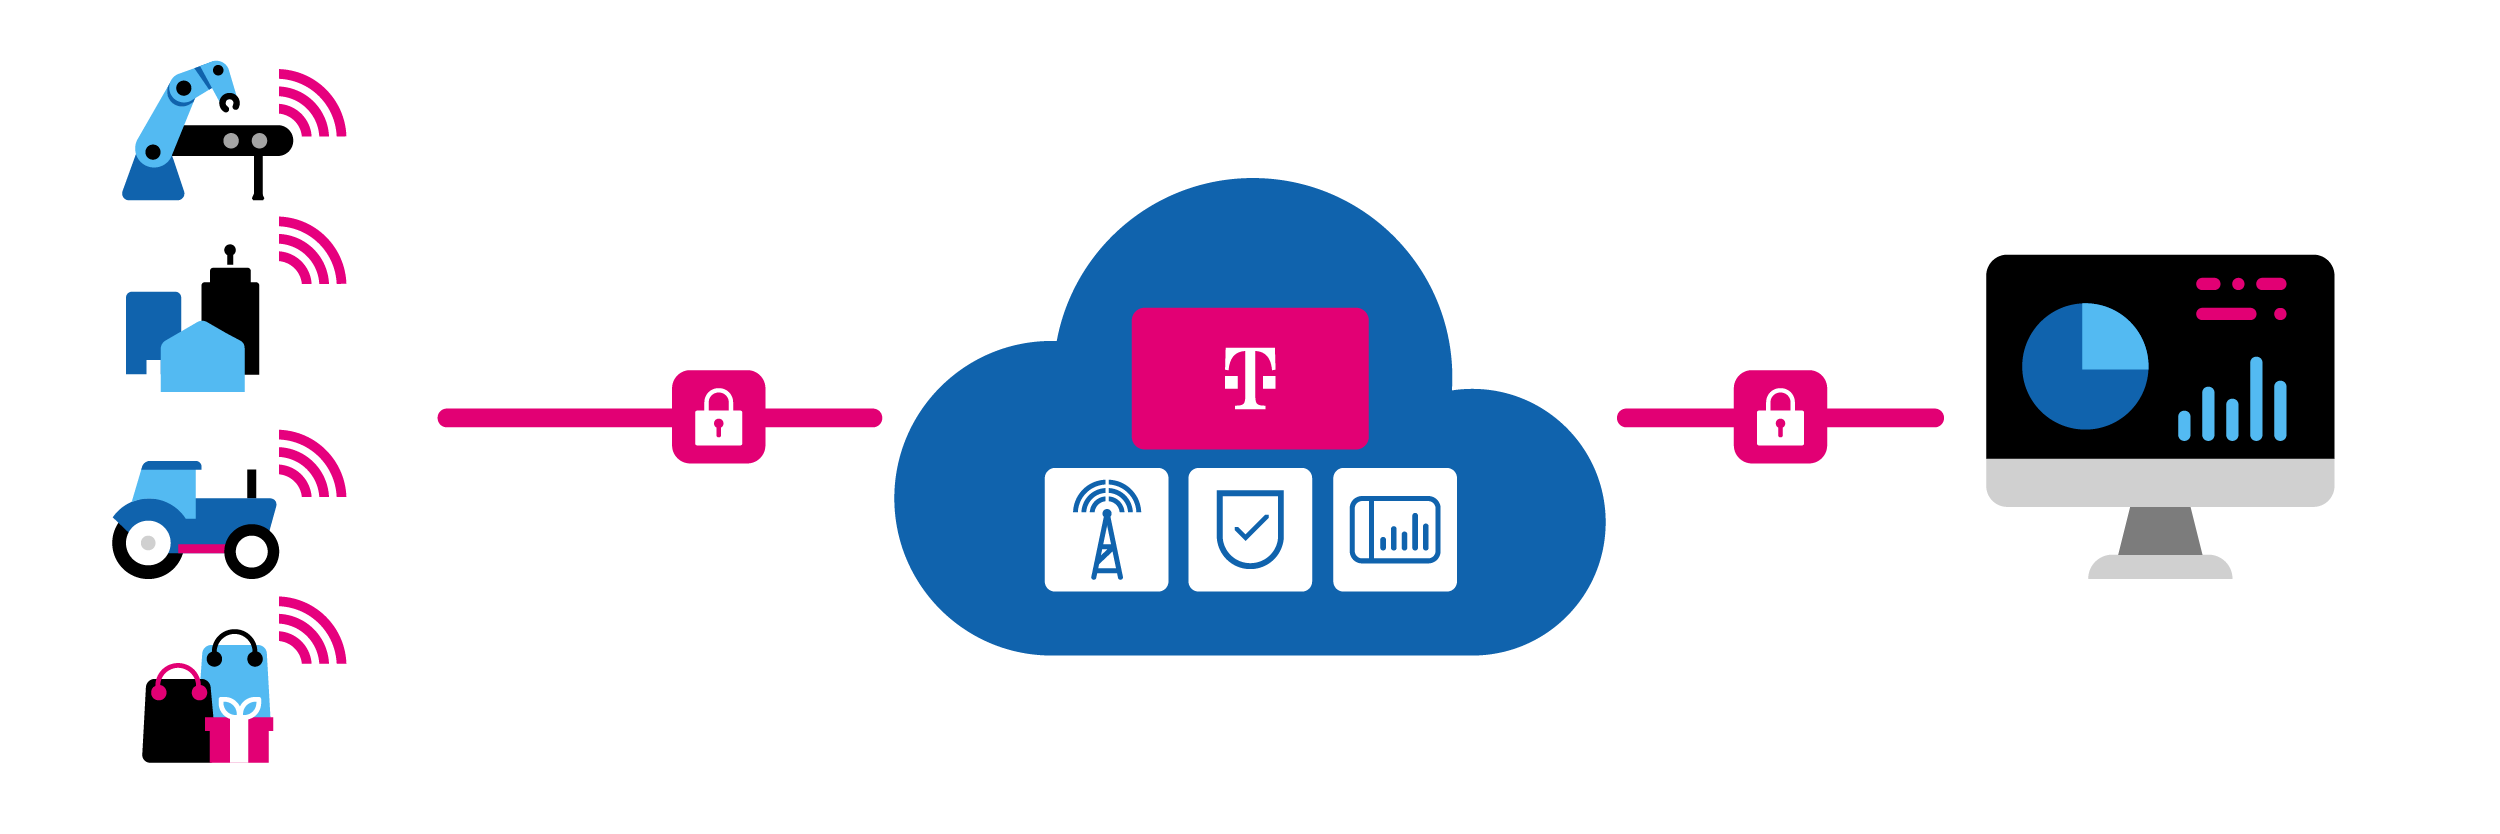 IoT T-Mobile Omgeving